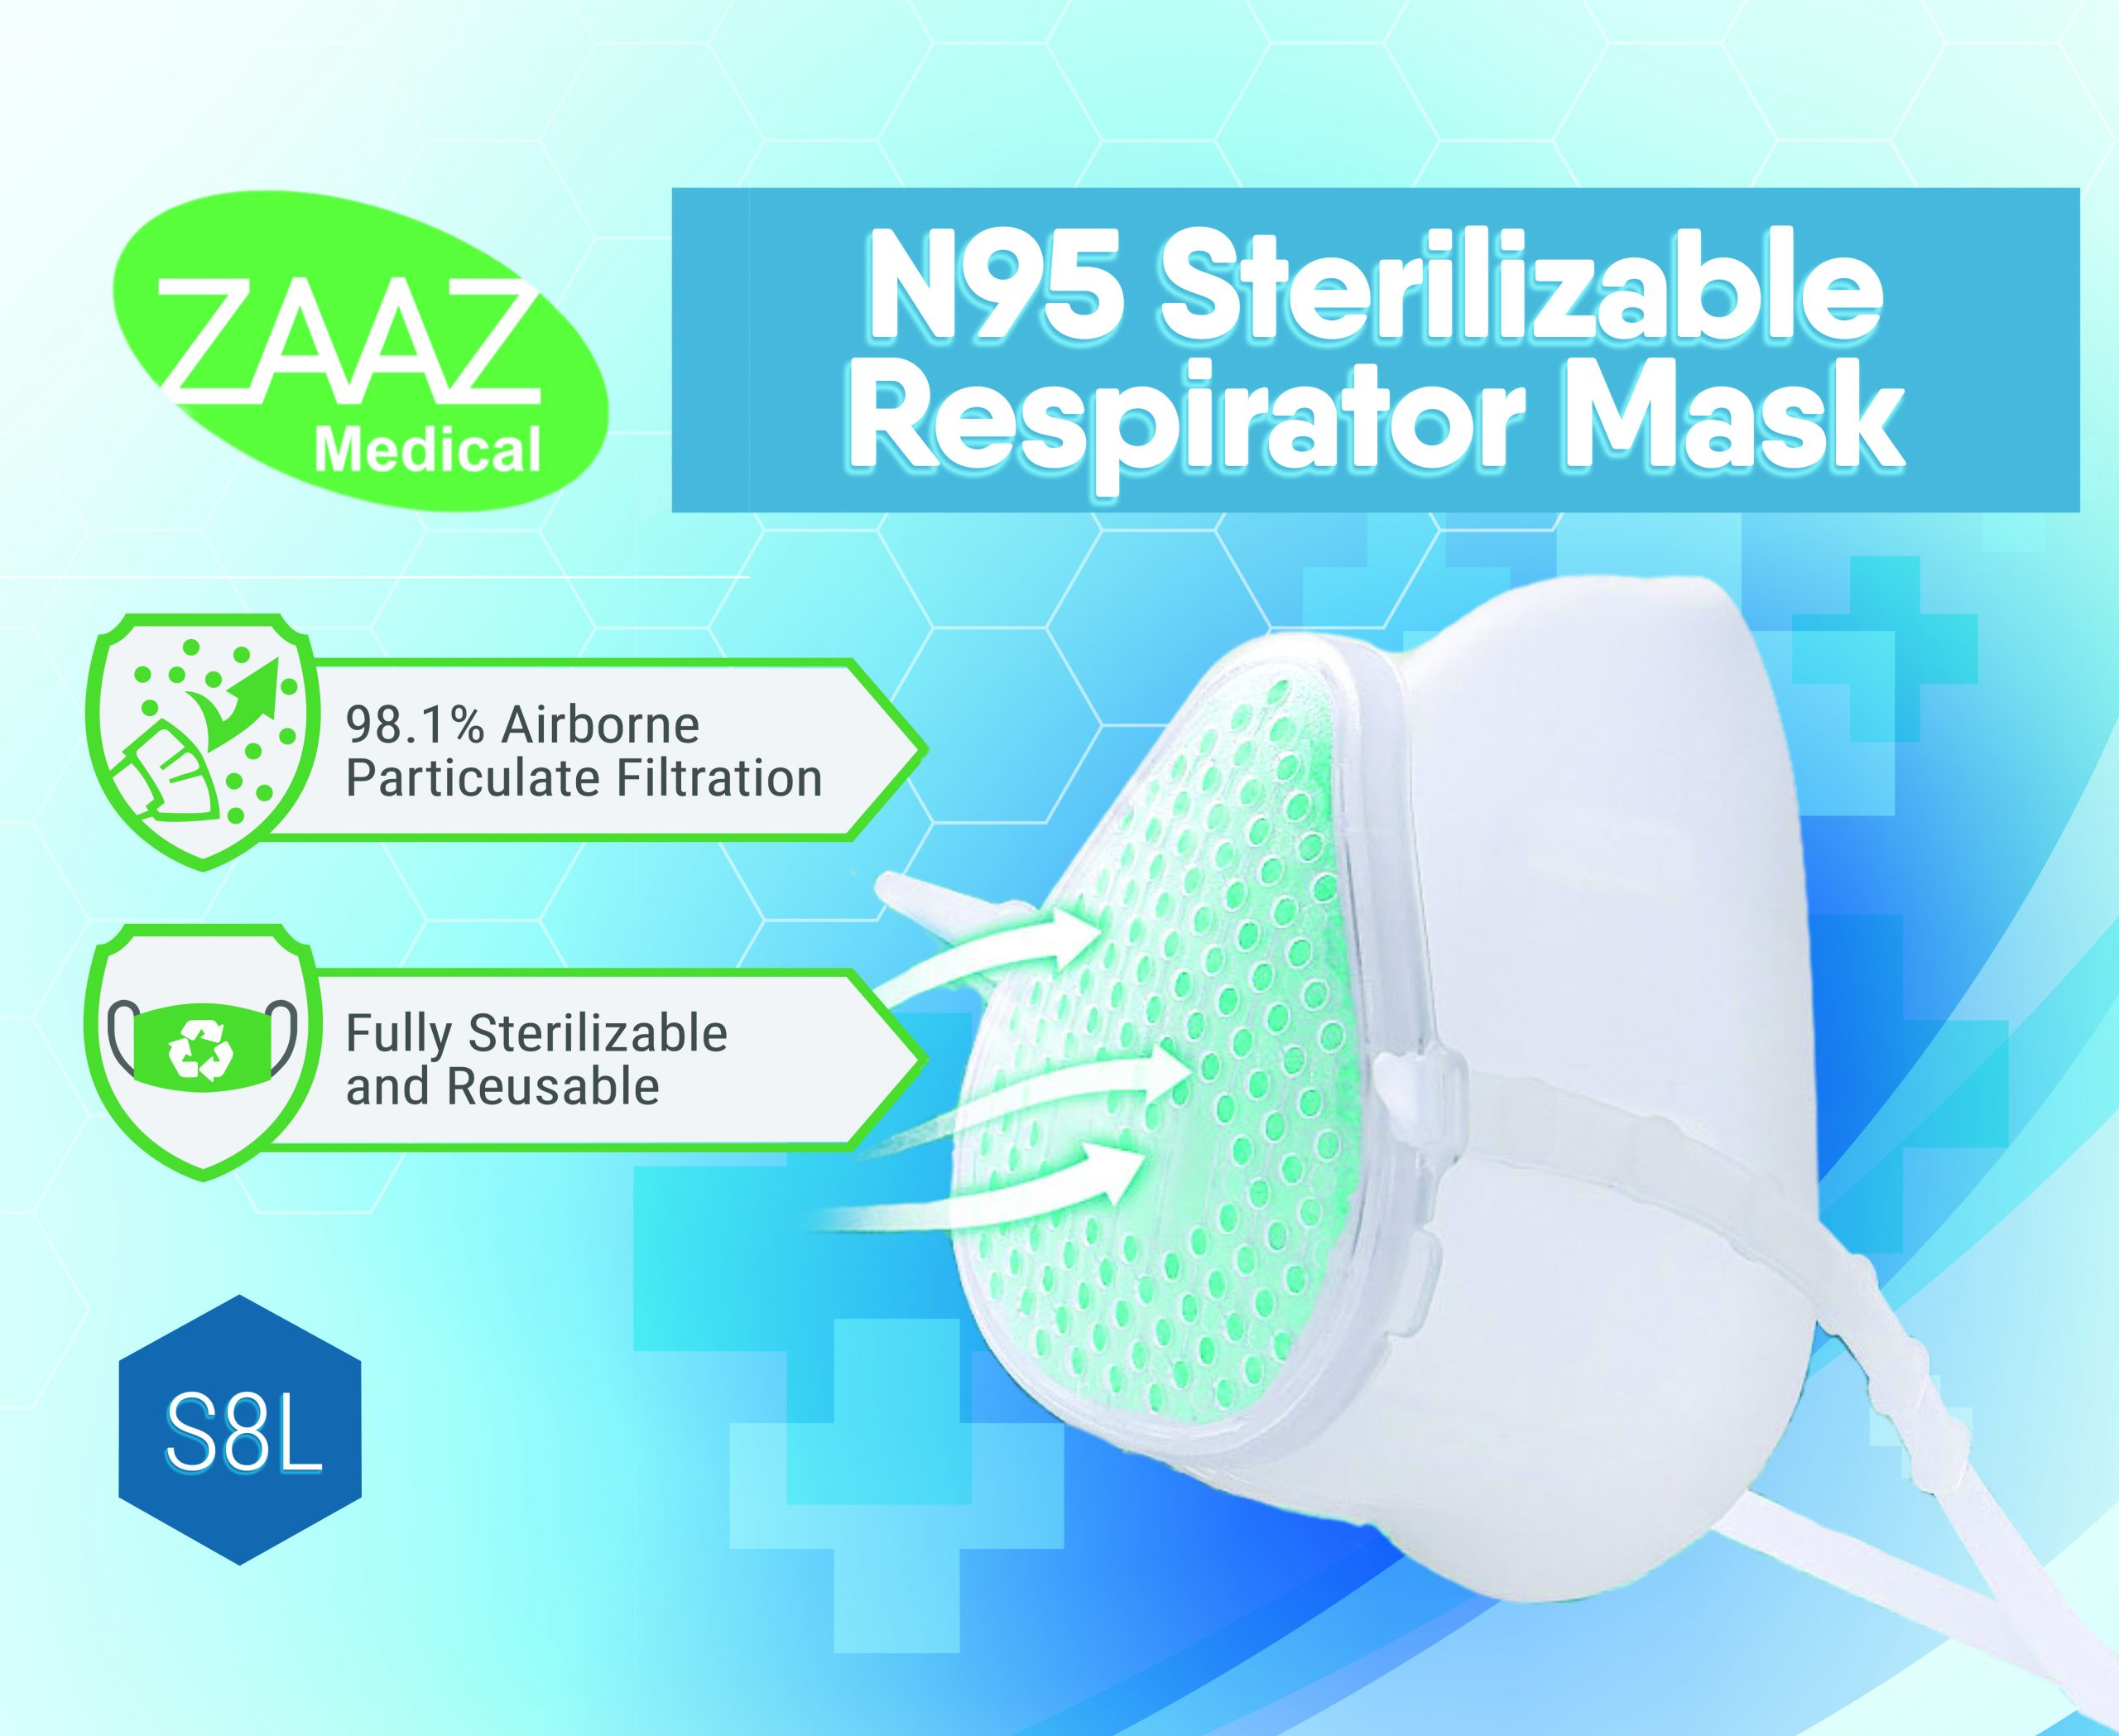 sirio-dynamics-affordable-and-quality-graphic-design-n95-sterilizable-respirator-mask-insert-graphic-design